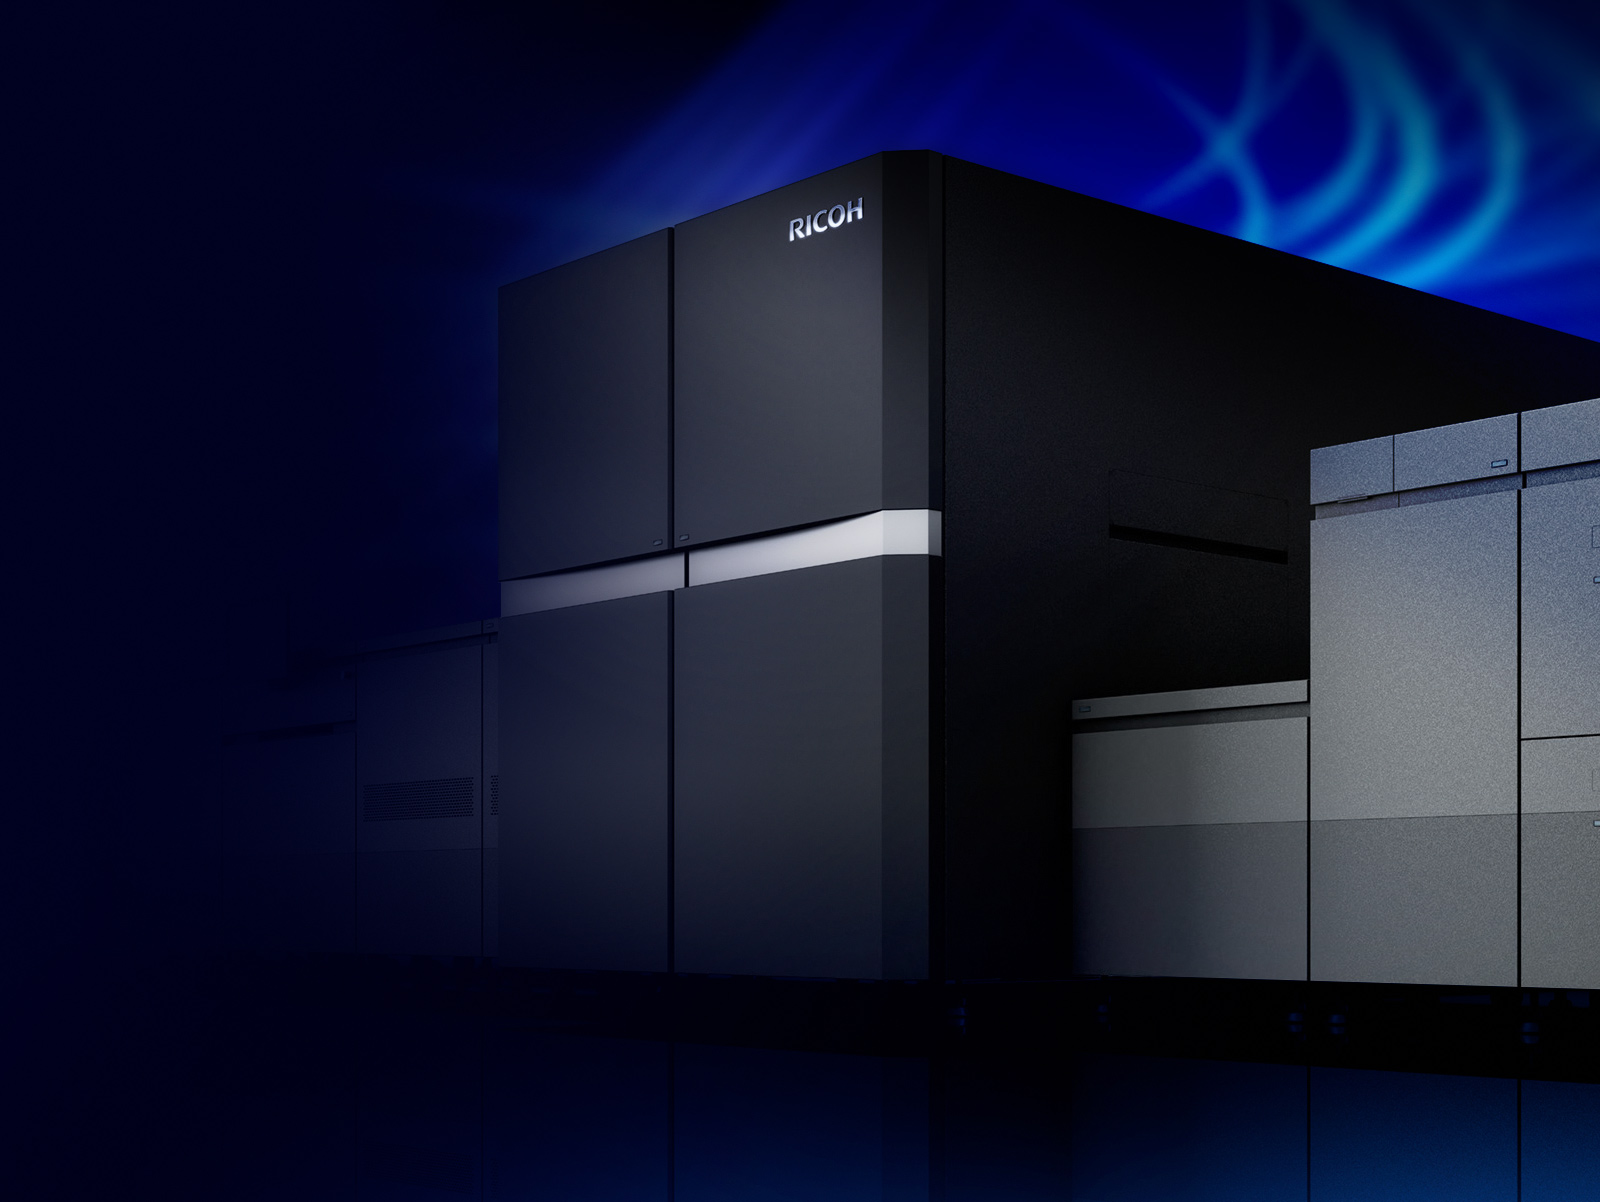 Commercial printers preview the RICOH ProTM Z75 B2 sheetfed inkjet press designed to enable business growth